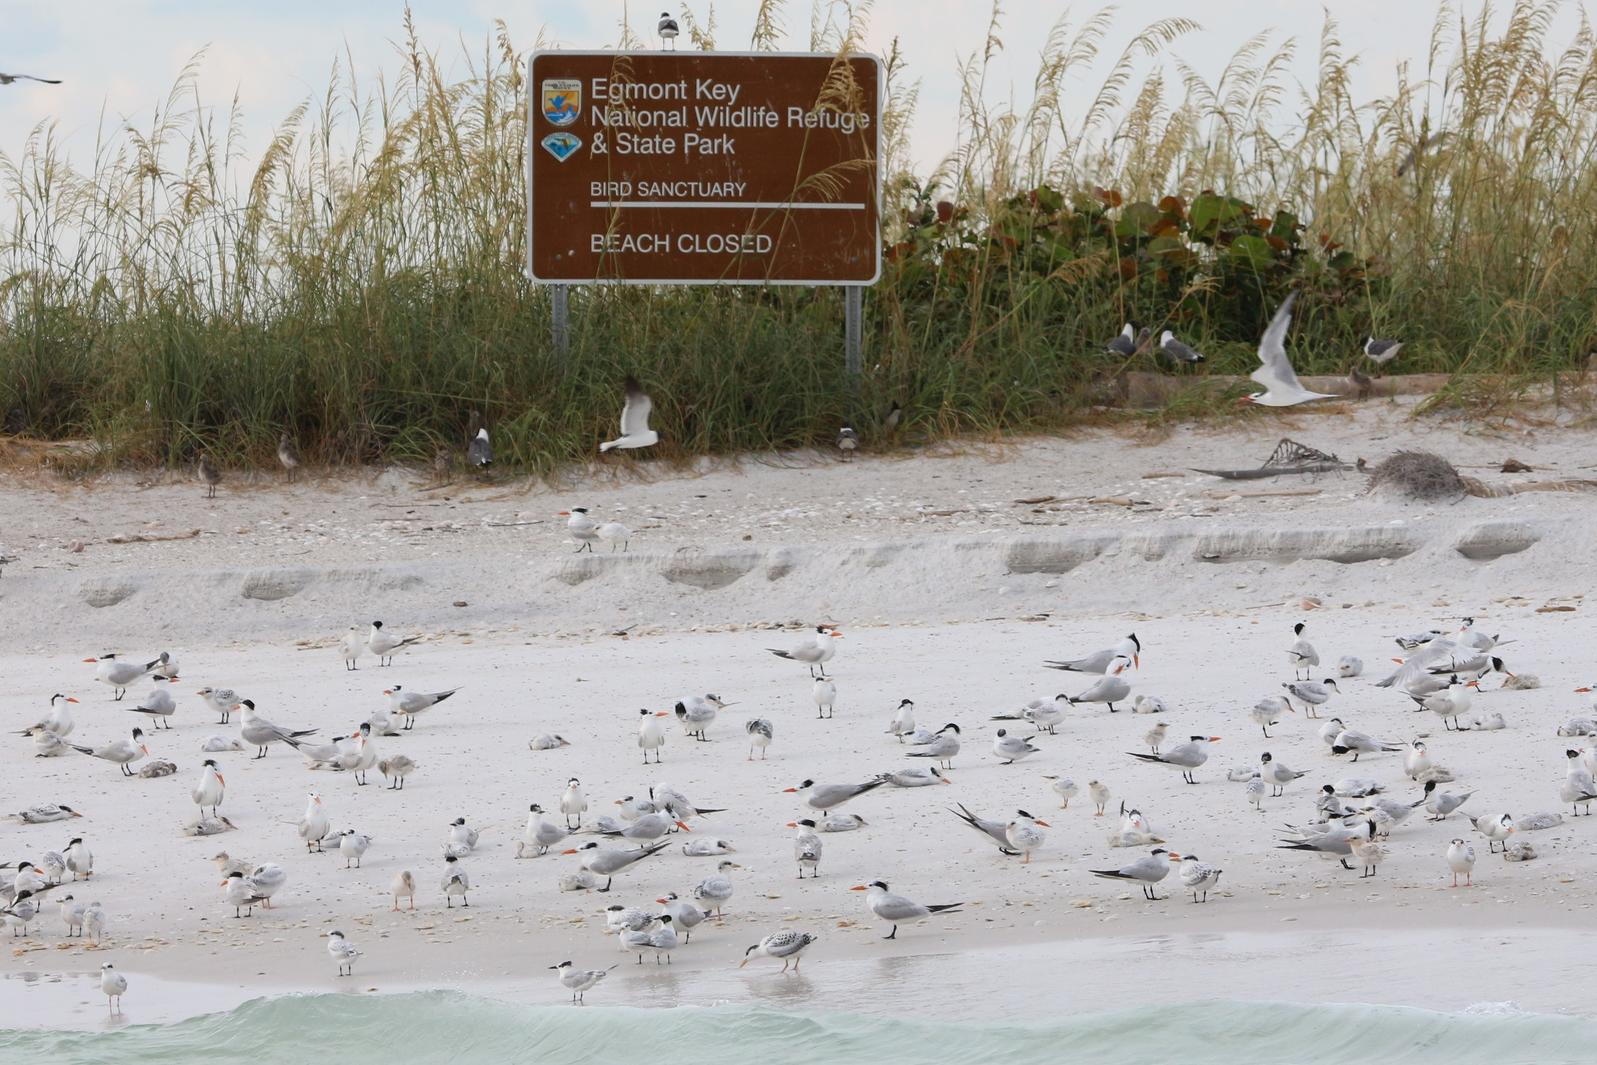 Nesting birds at Egmont Key